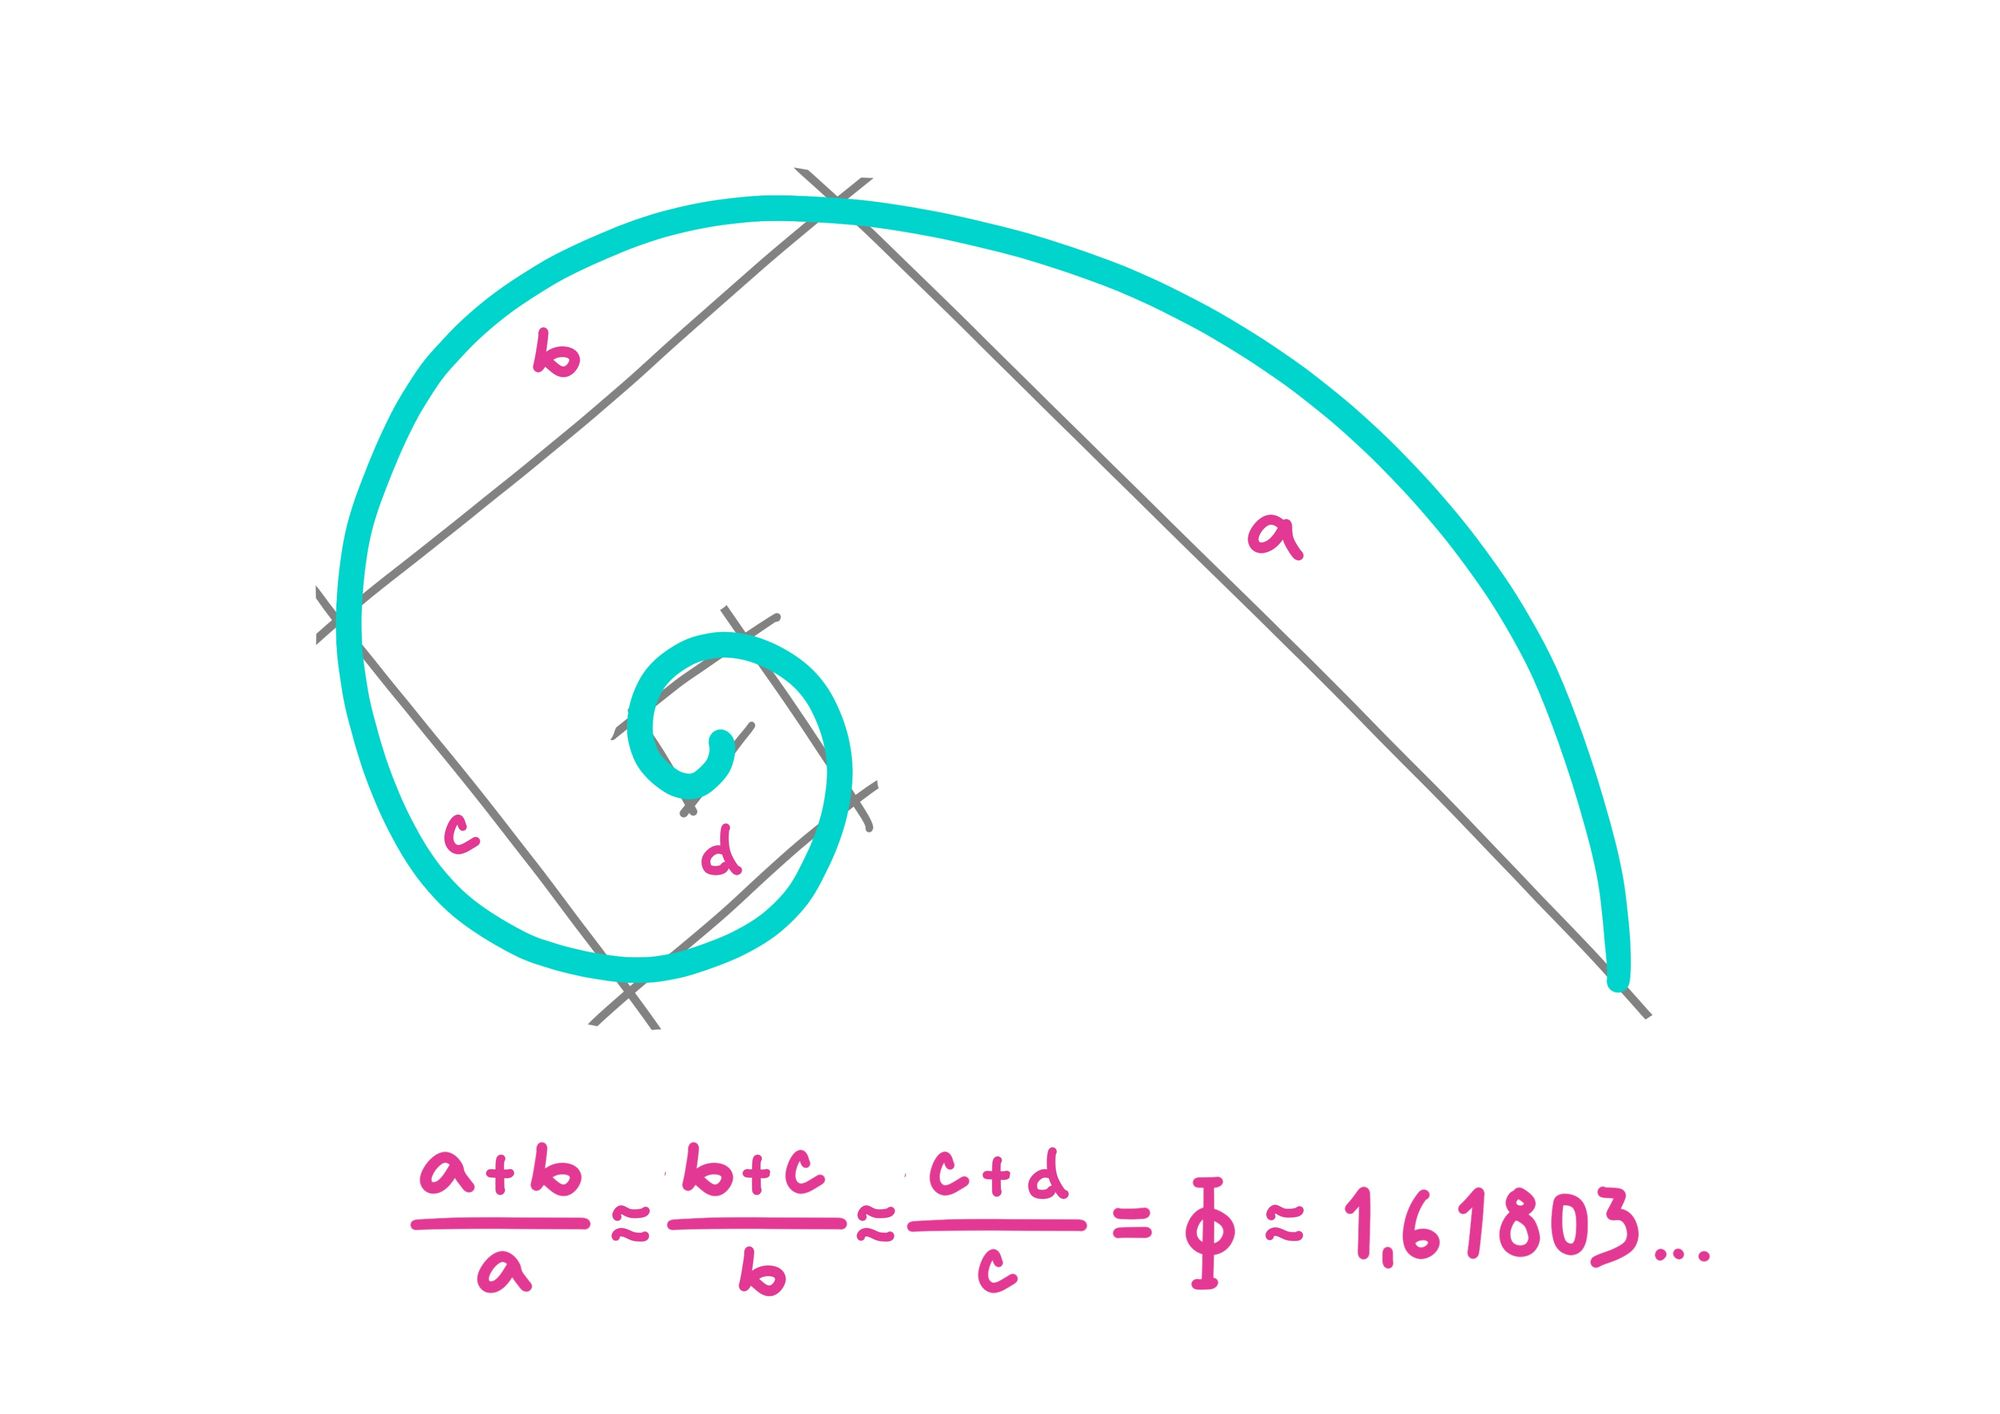 Fibonacci sequence, spiral and Phi - the golden ratio